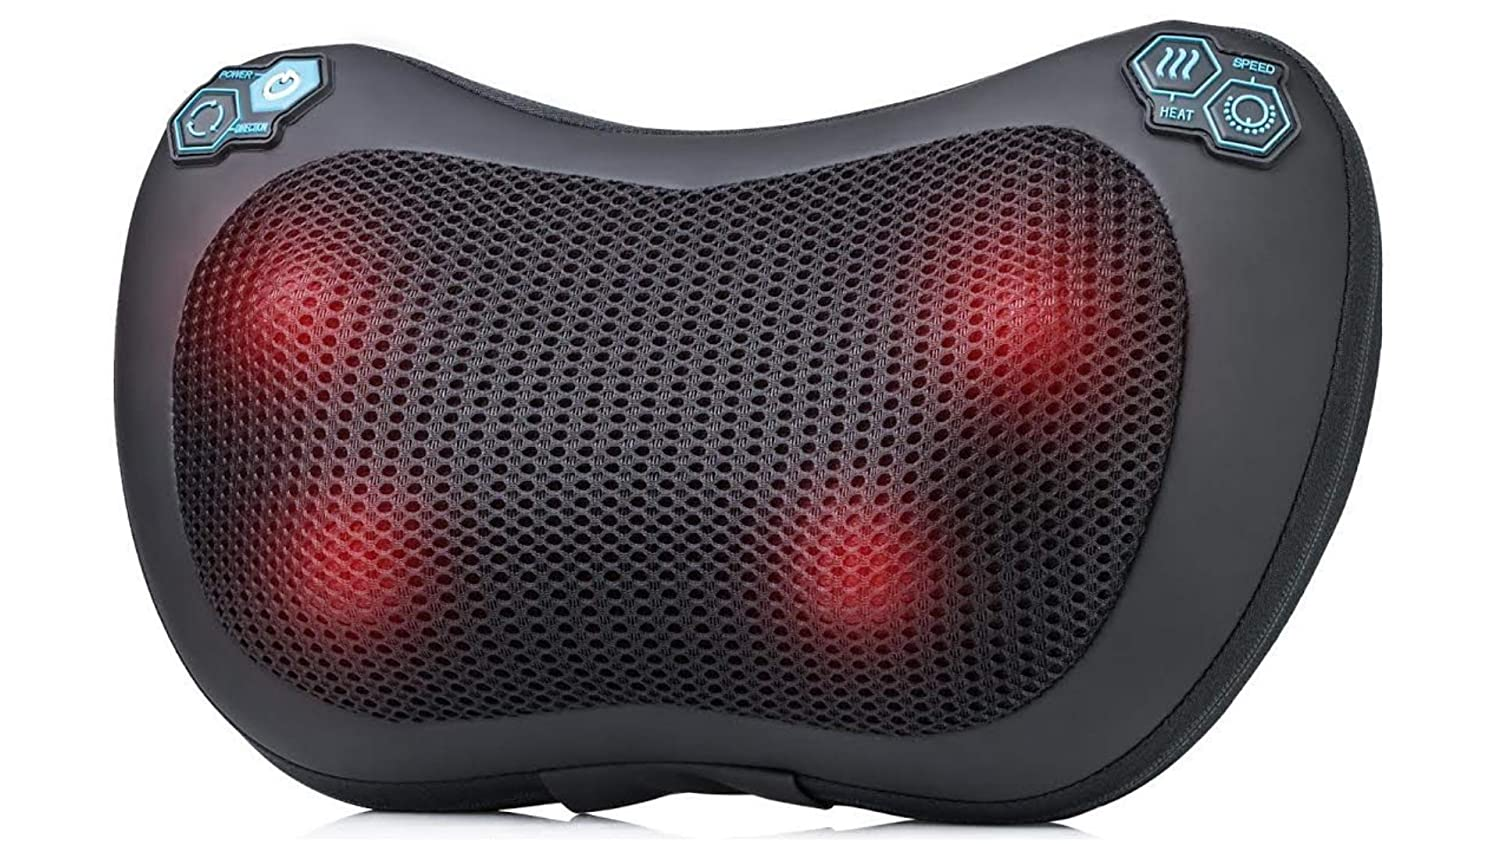 HemingWeigh Shiatsu Neck Back Massage Pillow – Heated Deep Tissue Kneading Massager with 4 Rollers – Adjustable Speed Heating Features – Relieve Pain Strained Muscles